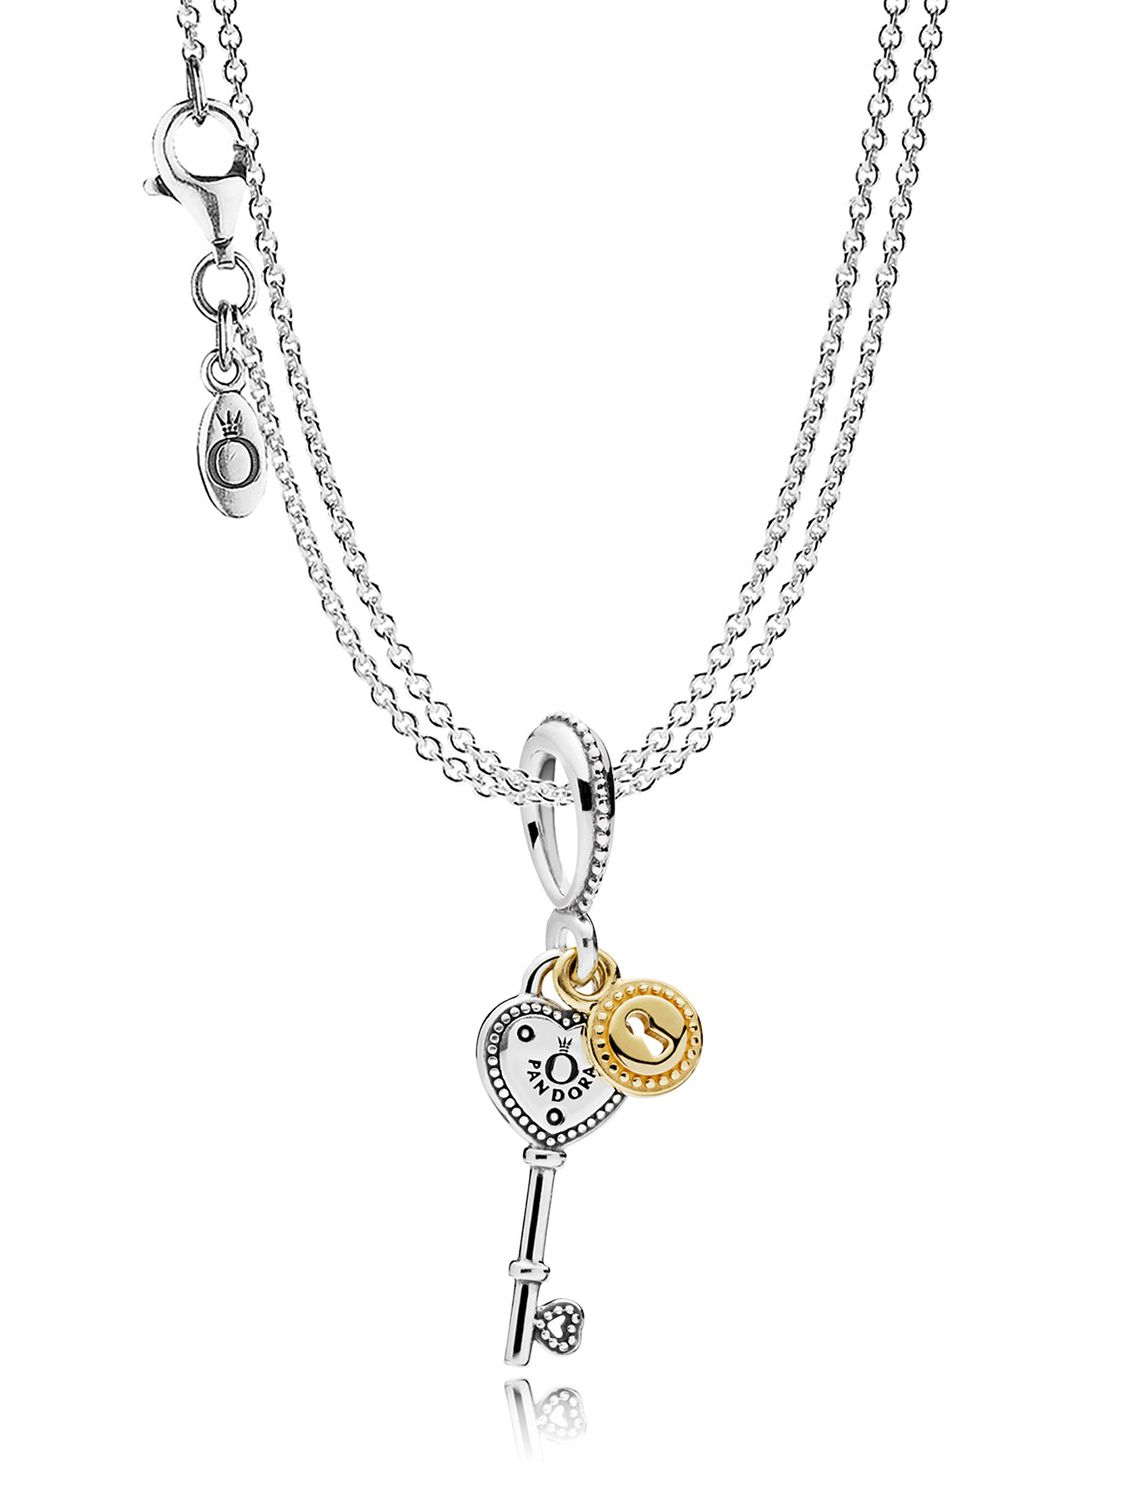 Pandora 08393 Necklace Key To My Heart Pendant Pertaining To Most Popular Interlocked Hearts Collier Necklaces (View 15 of 25)